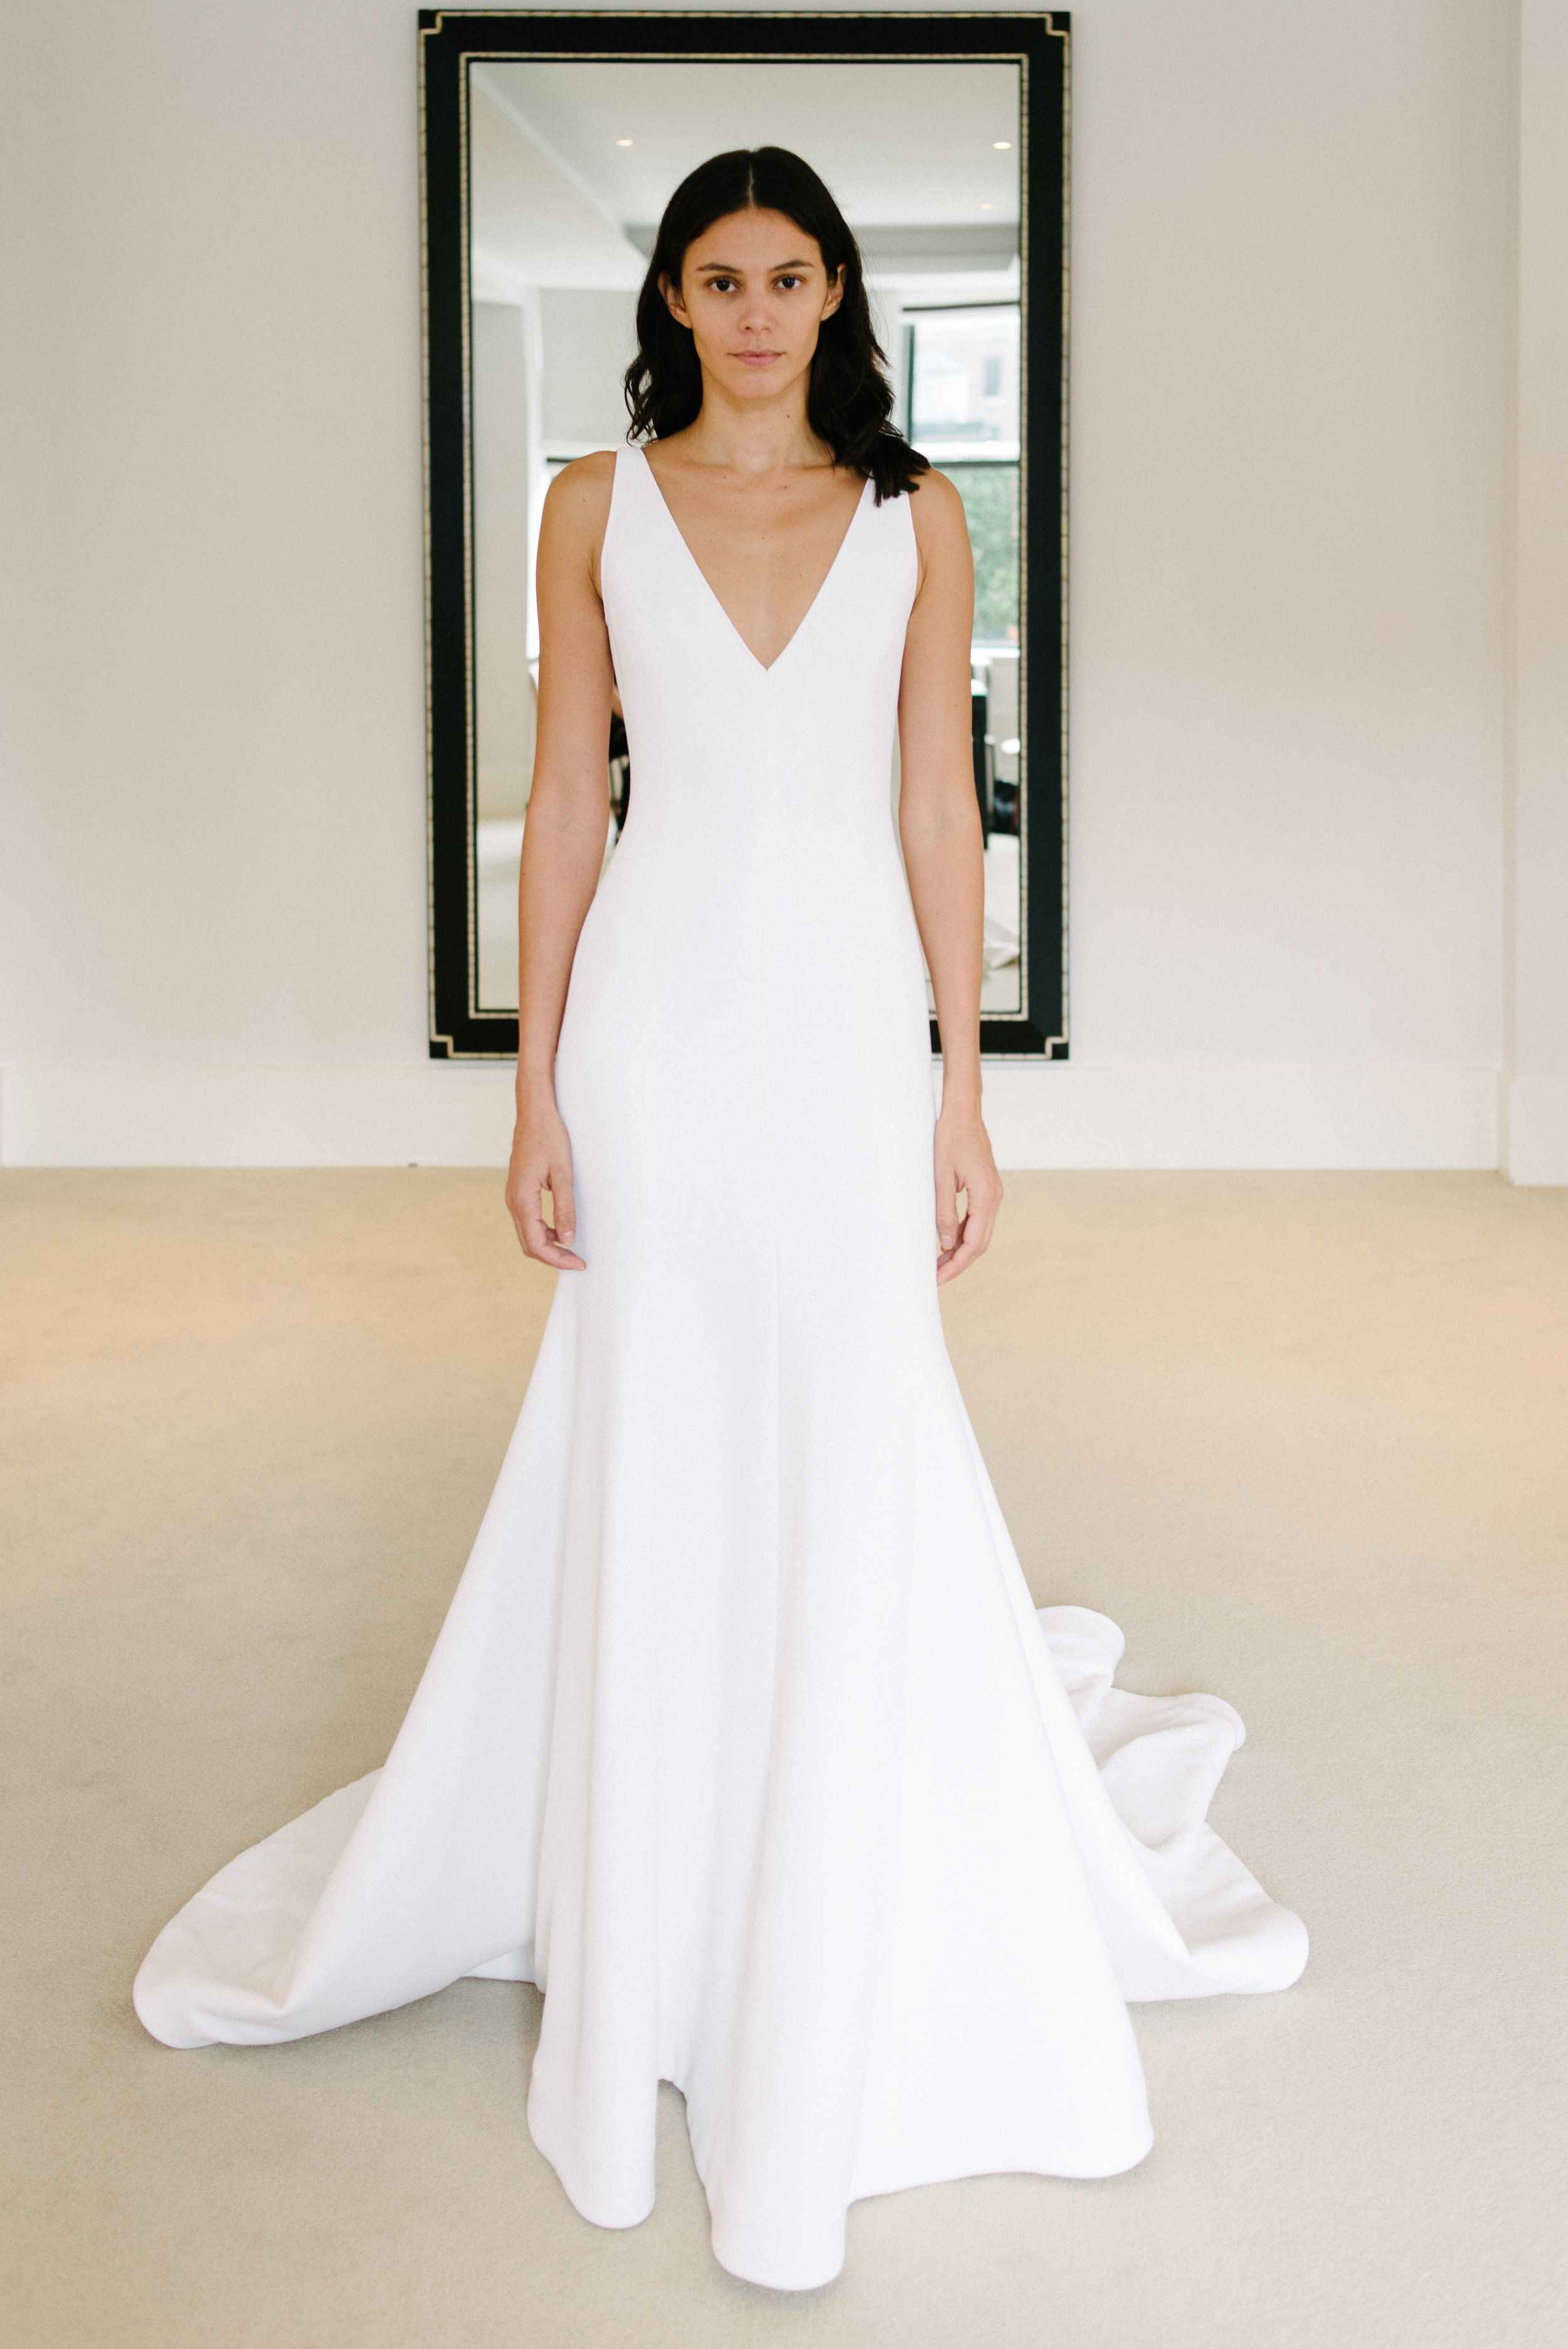 Behind the Scenes with the New Carolina Herrera Collection #bridalshops